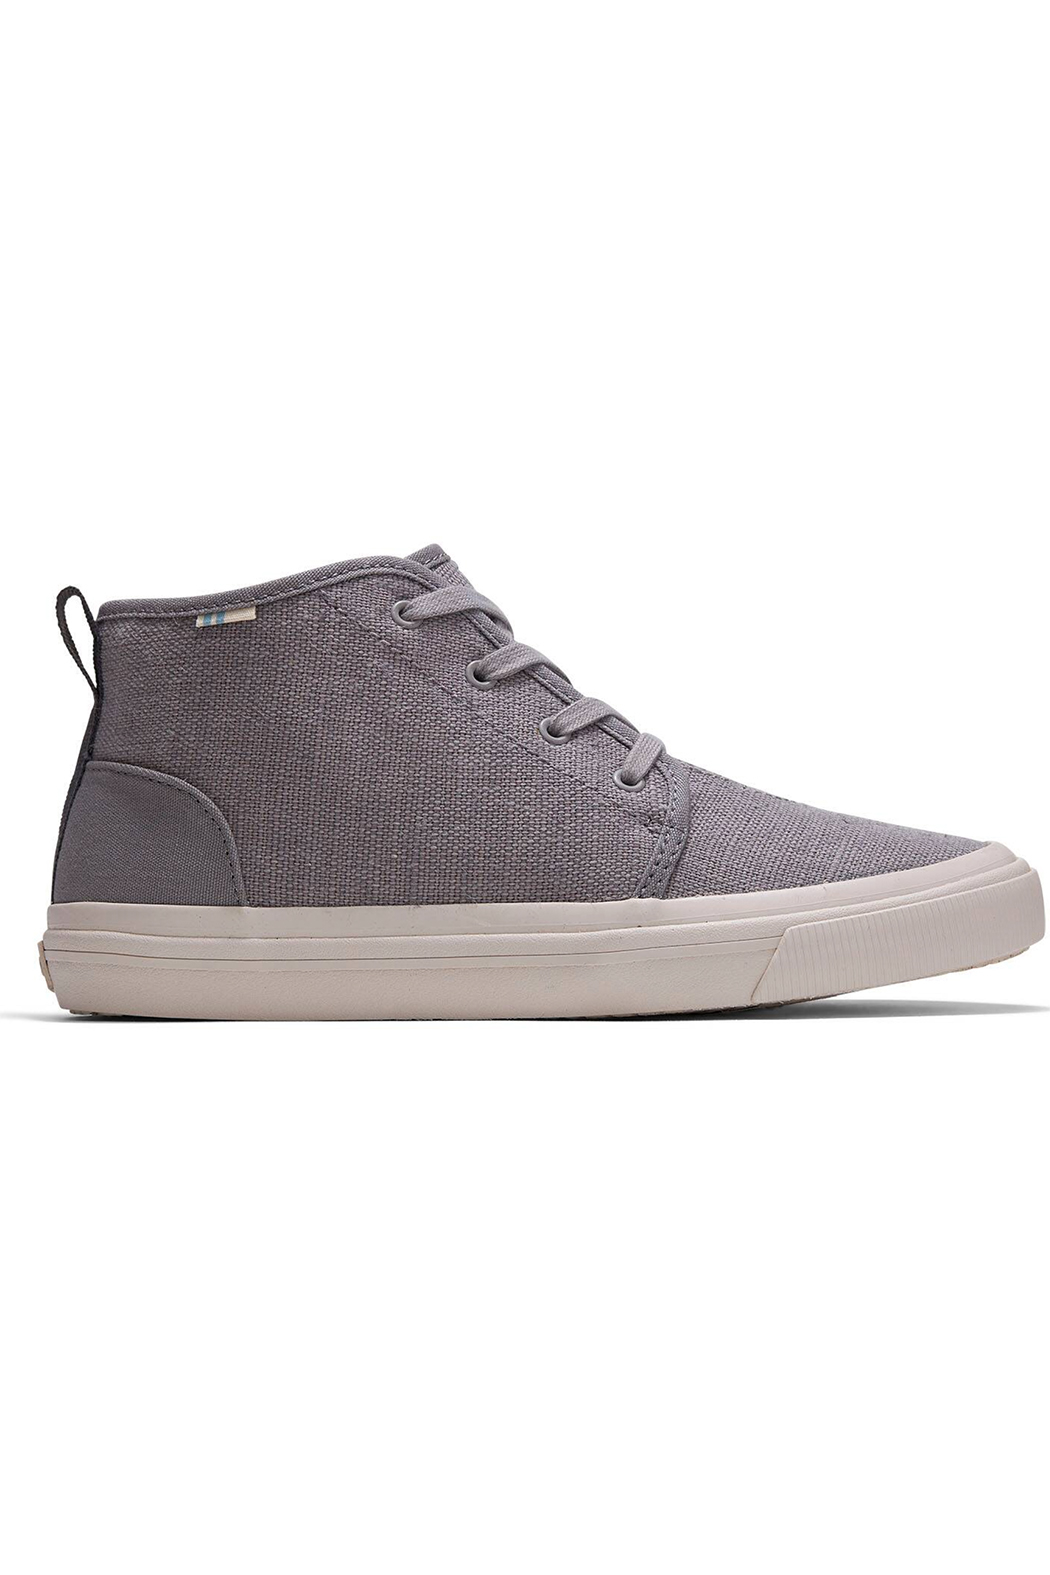 TOMS Youth Carlo Canvas Mid Sneakers - Main Image